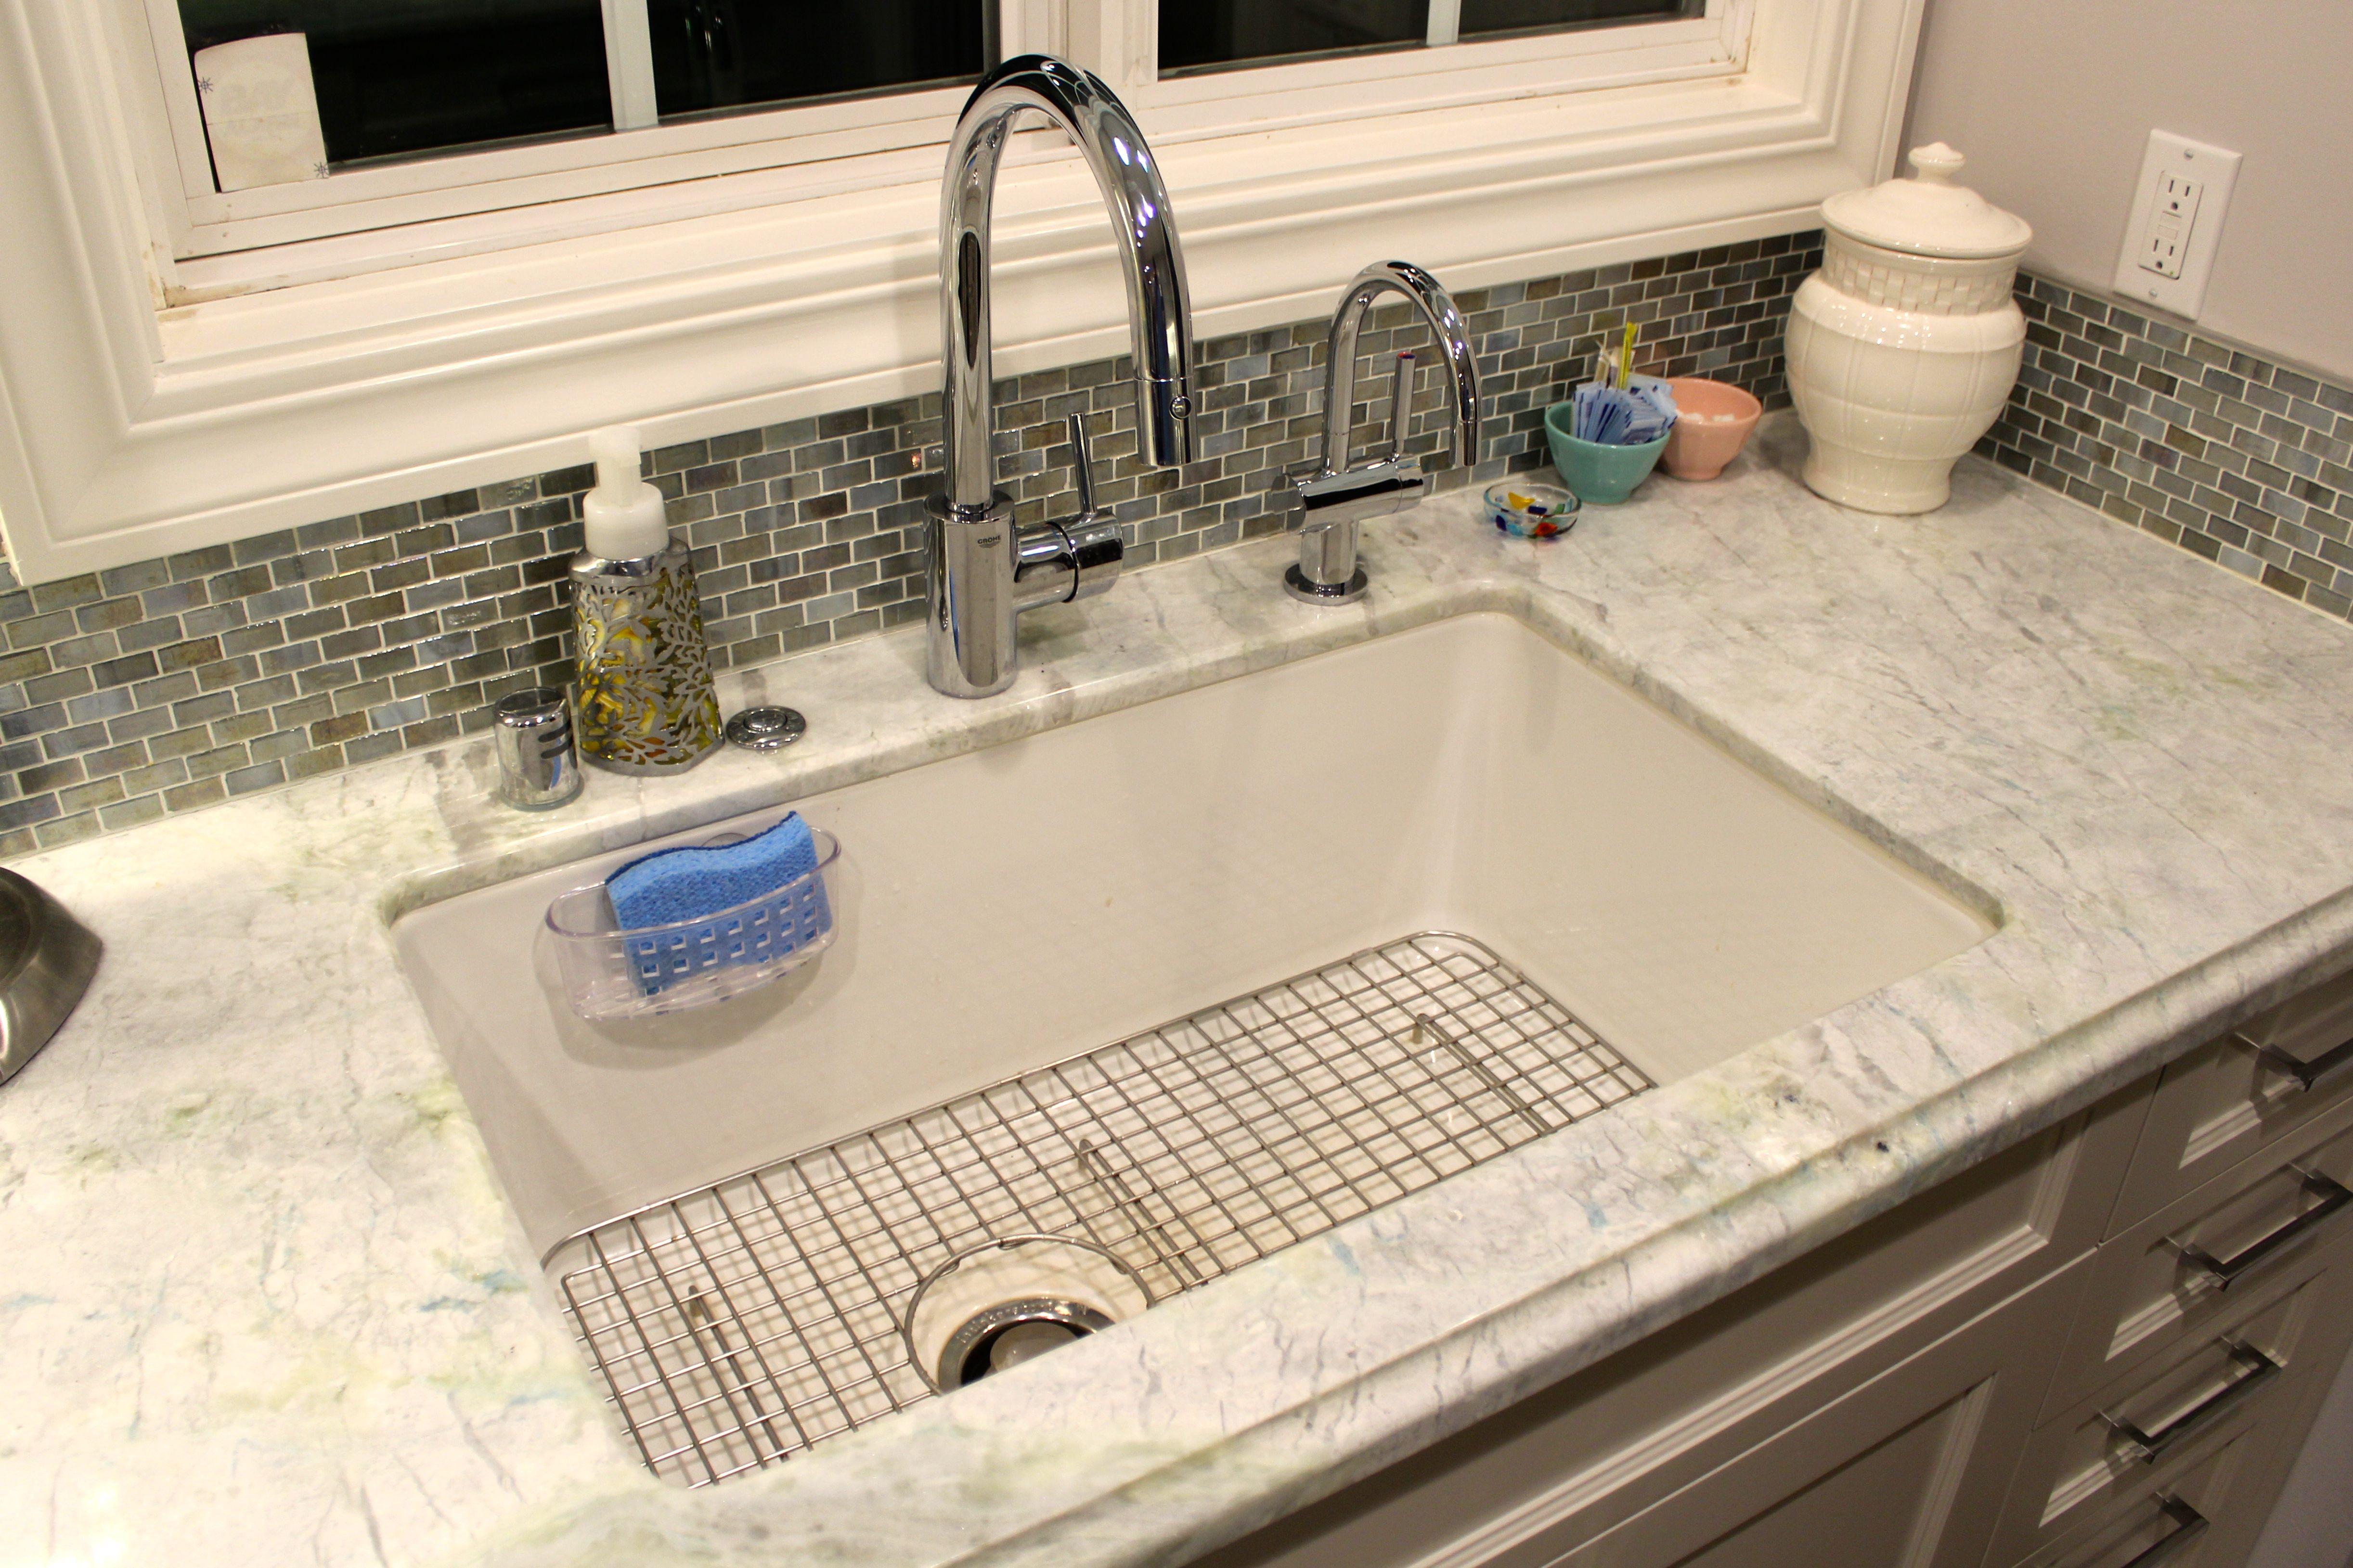 Rohl Allia White Fireclay Undermount Single Bowl Sink And Rohl Sink Grid Wsg6307 Gr Single Basin Kitchen Sink Cast Iron Kitchen Sinks Undermount Kitchen Sinks